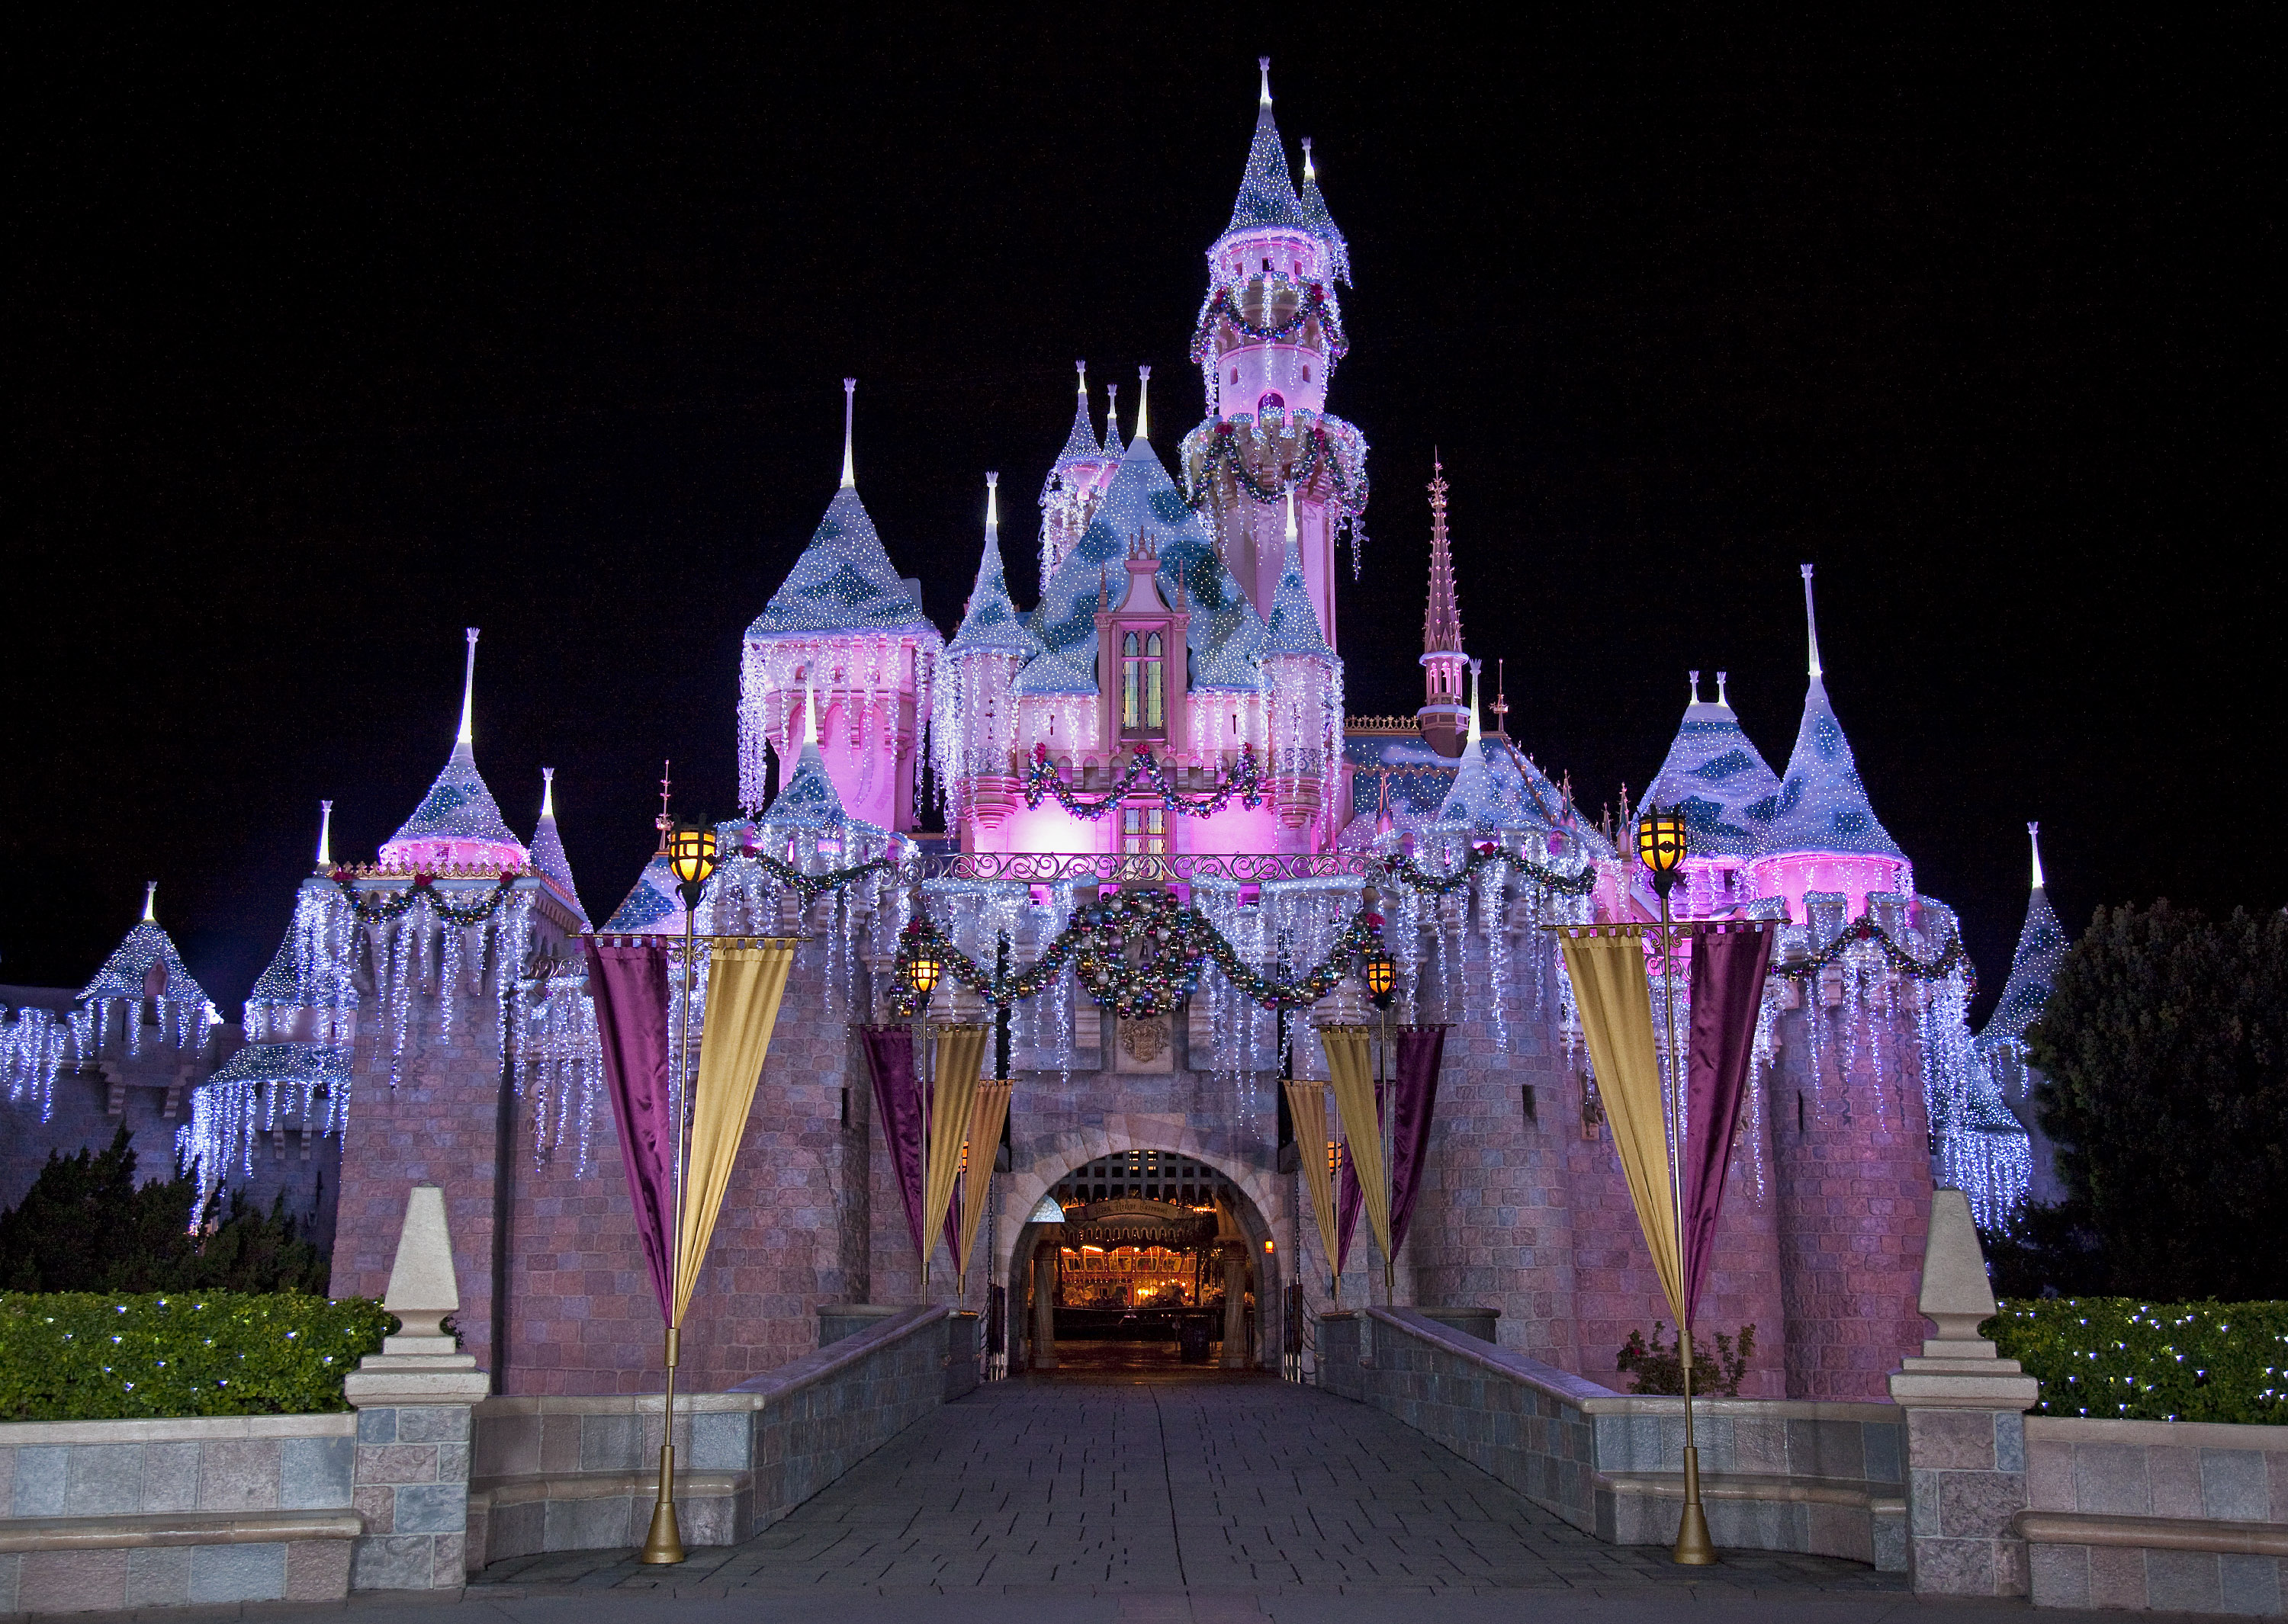 disney parks holiday 2016 specials coming to abc the wonderful world of disney magical holiday celebration - Purple Castle 2016